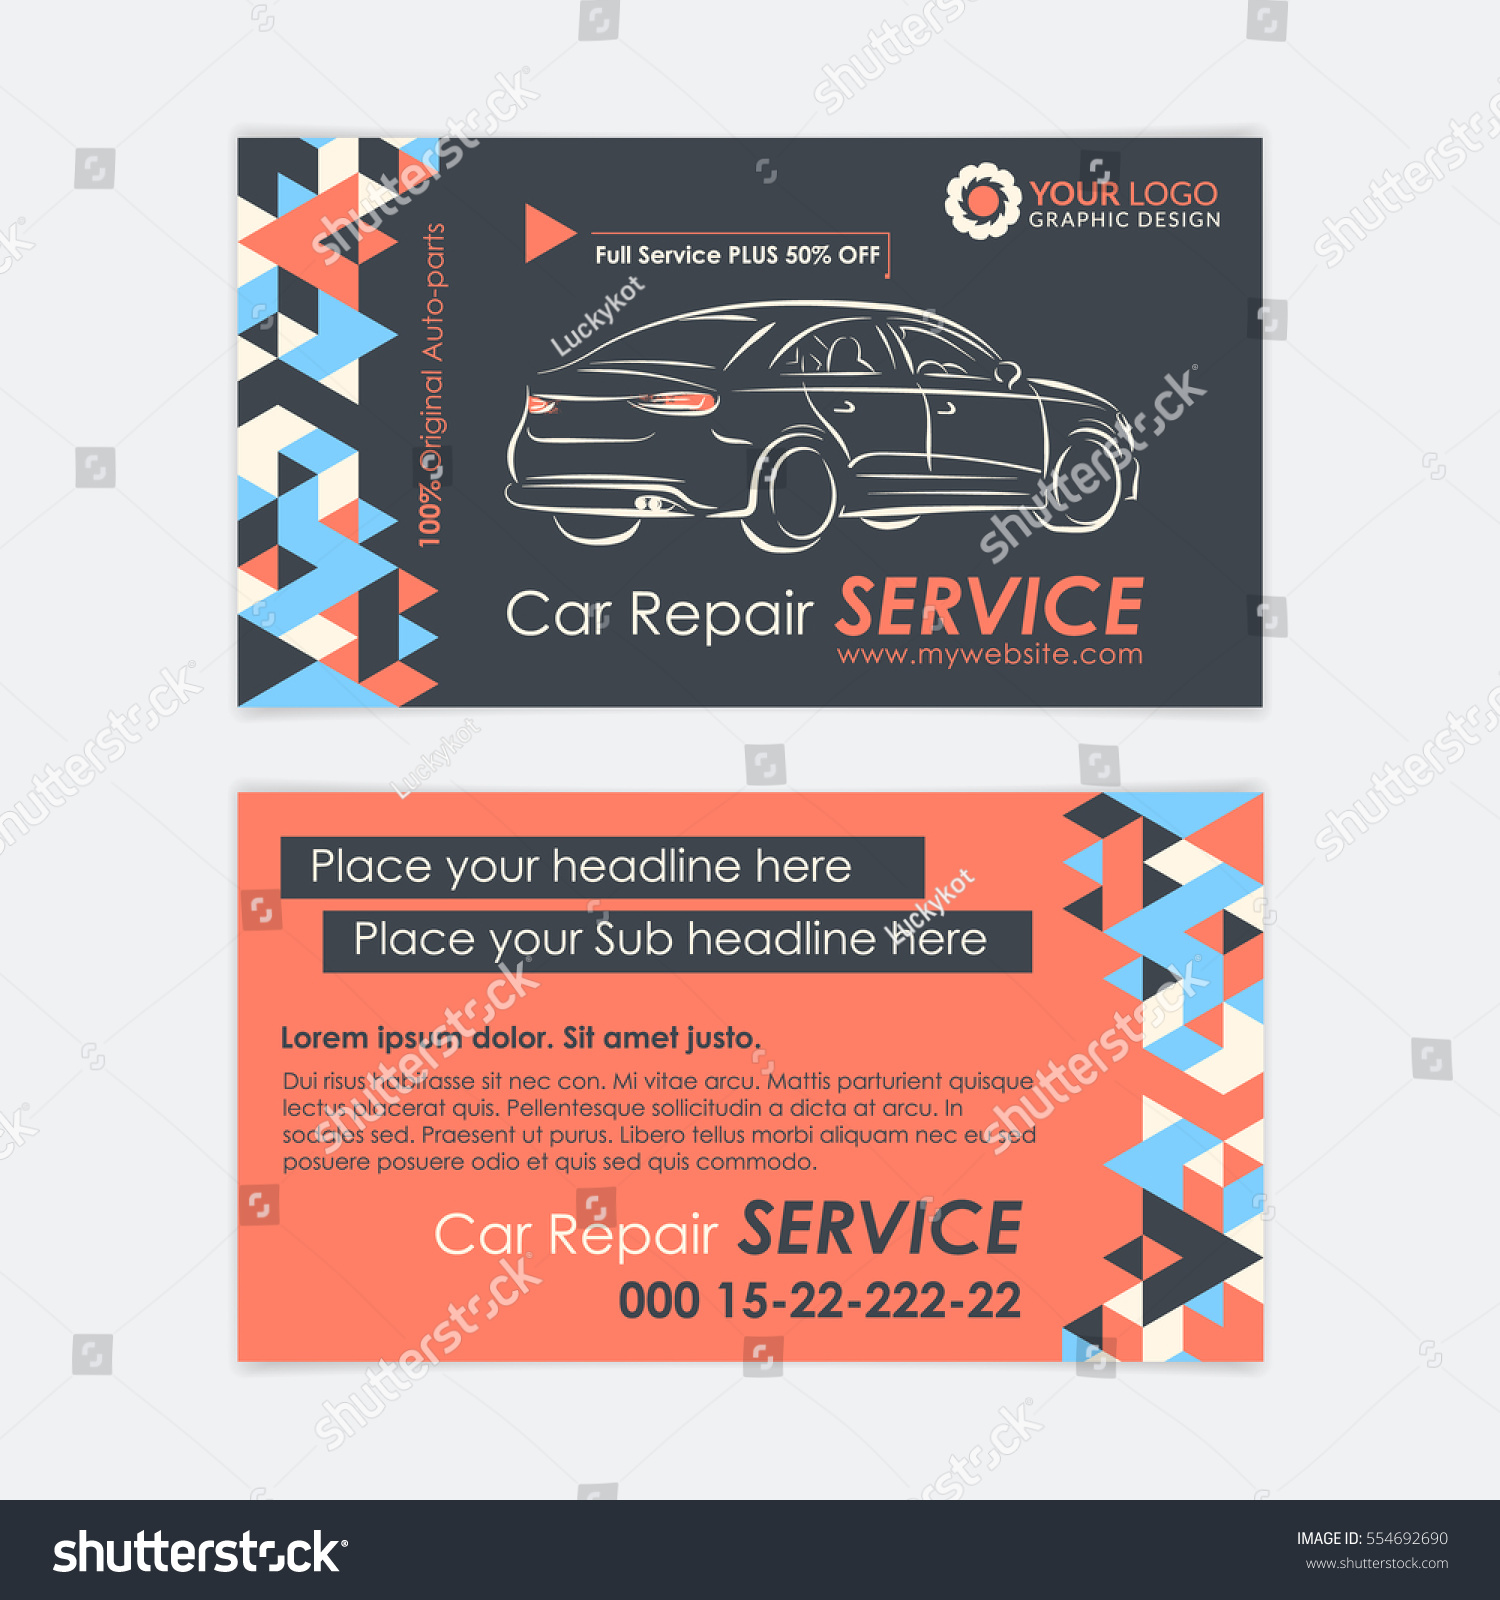 Automotive Service Business Card Template Car Stock Photo Photo - Create your own business card template